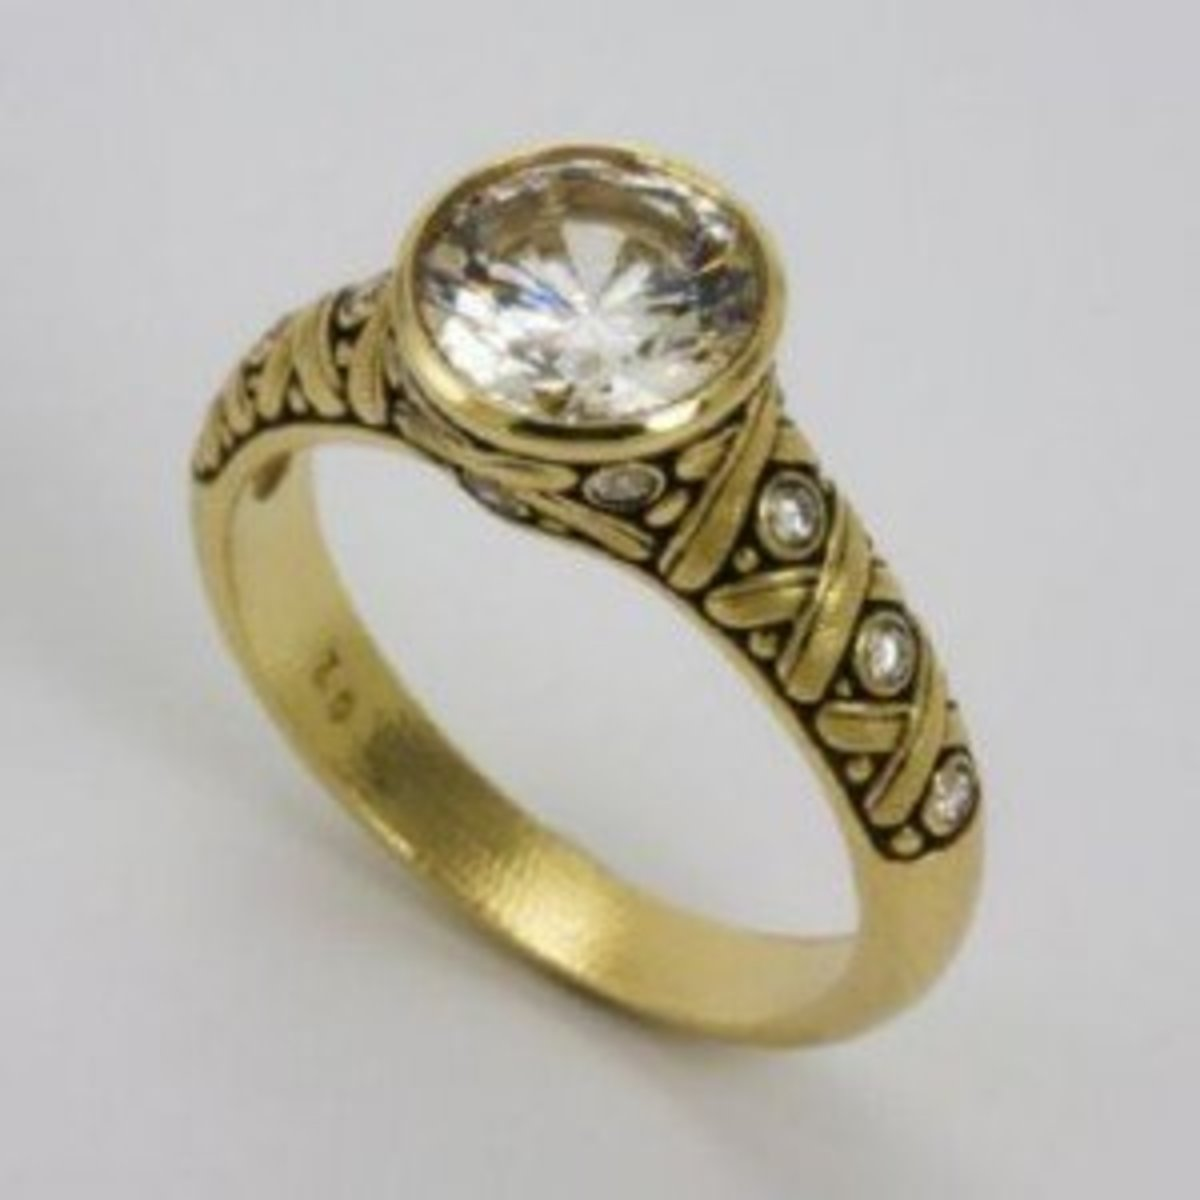 Unique 18kt yellow gold engagement ring by Alex Sepkus.